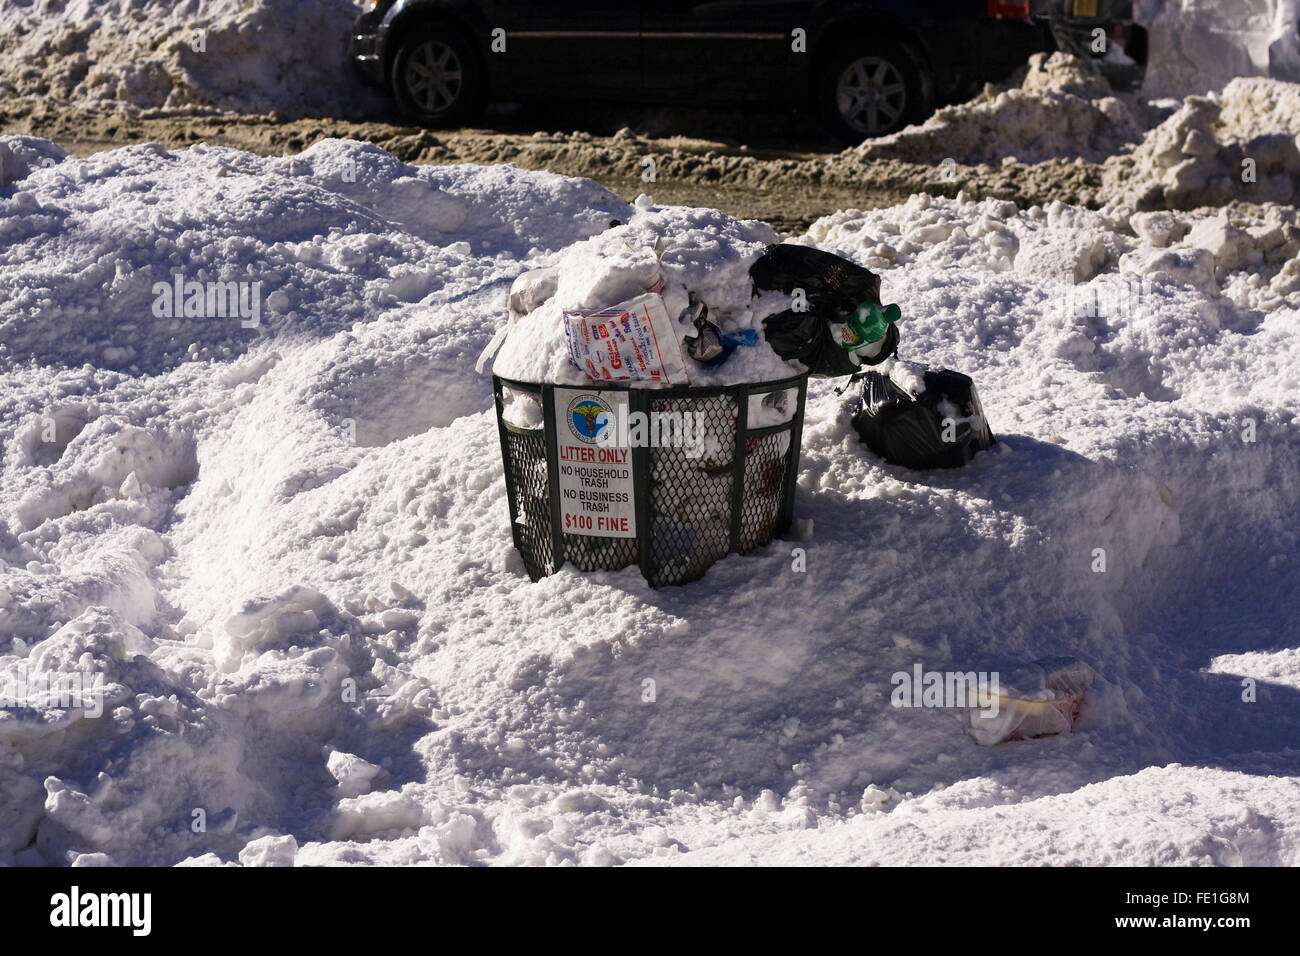 Overflowing Trash Can partially covered in 2 feet of snow on a street corner in New York City - Stock Image